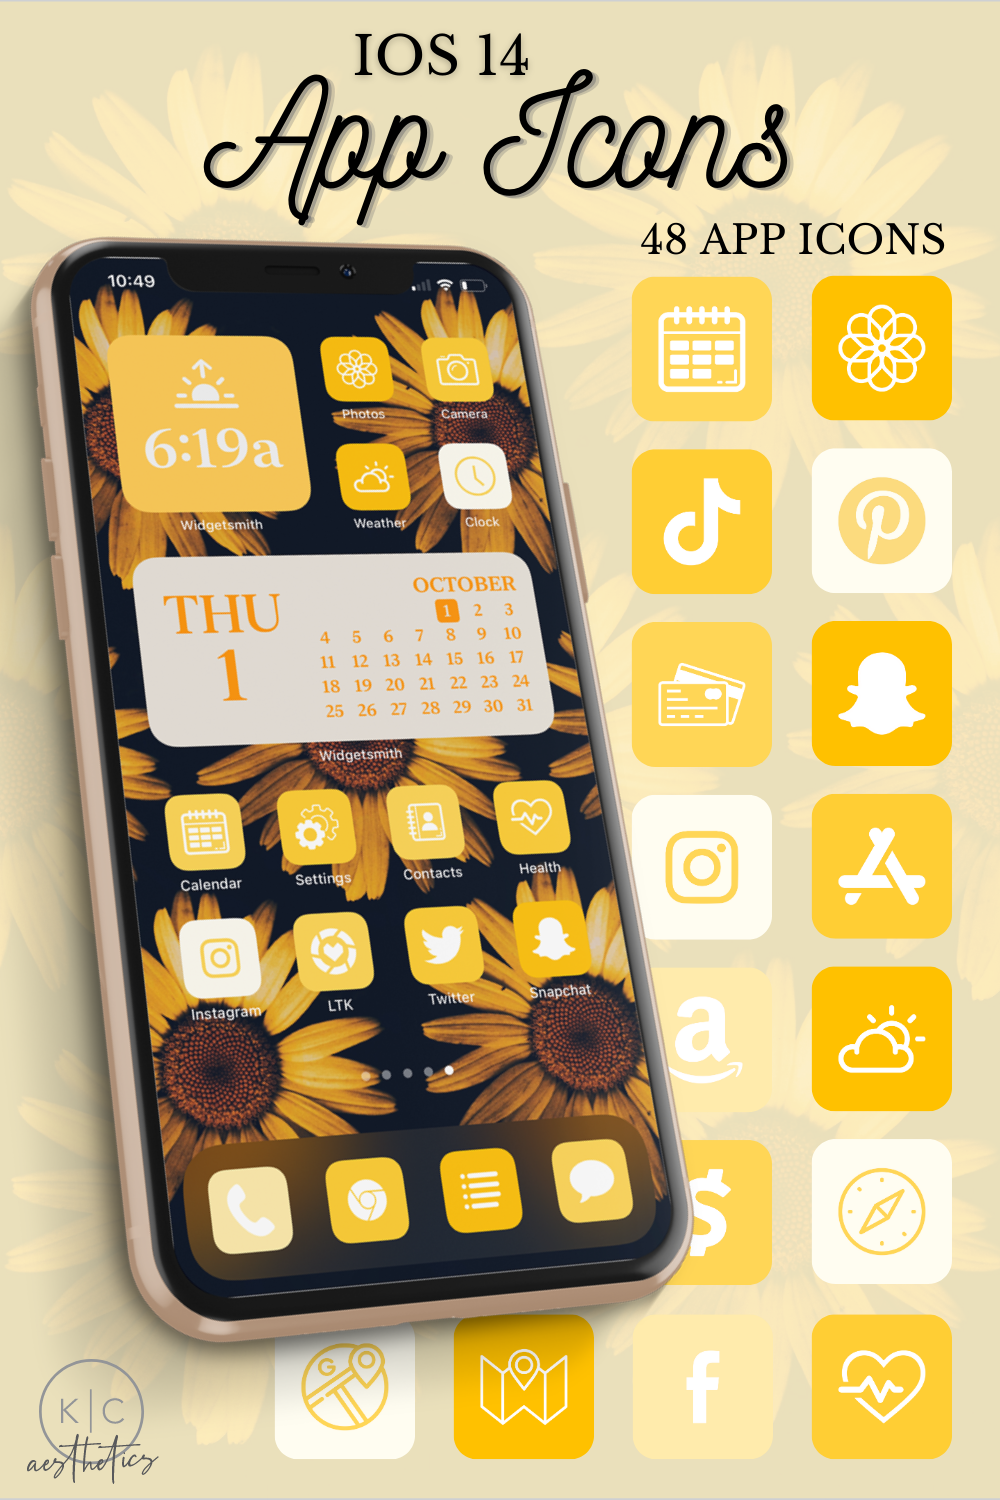 Ios 14 Icons Yellow Yellow App Icons Ios 14 Aesthetic Etsy In 2021 App Icon Iphone Icon Iphone Home Screen Layout Free calendar icons in various ui design styles for web, mobile, and graphic design projects. yellow app icons ios 14 aesthetic